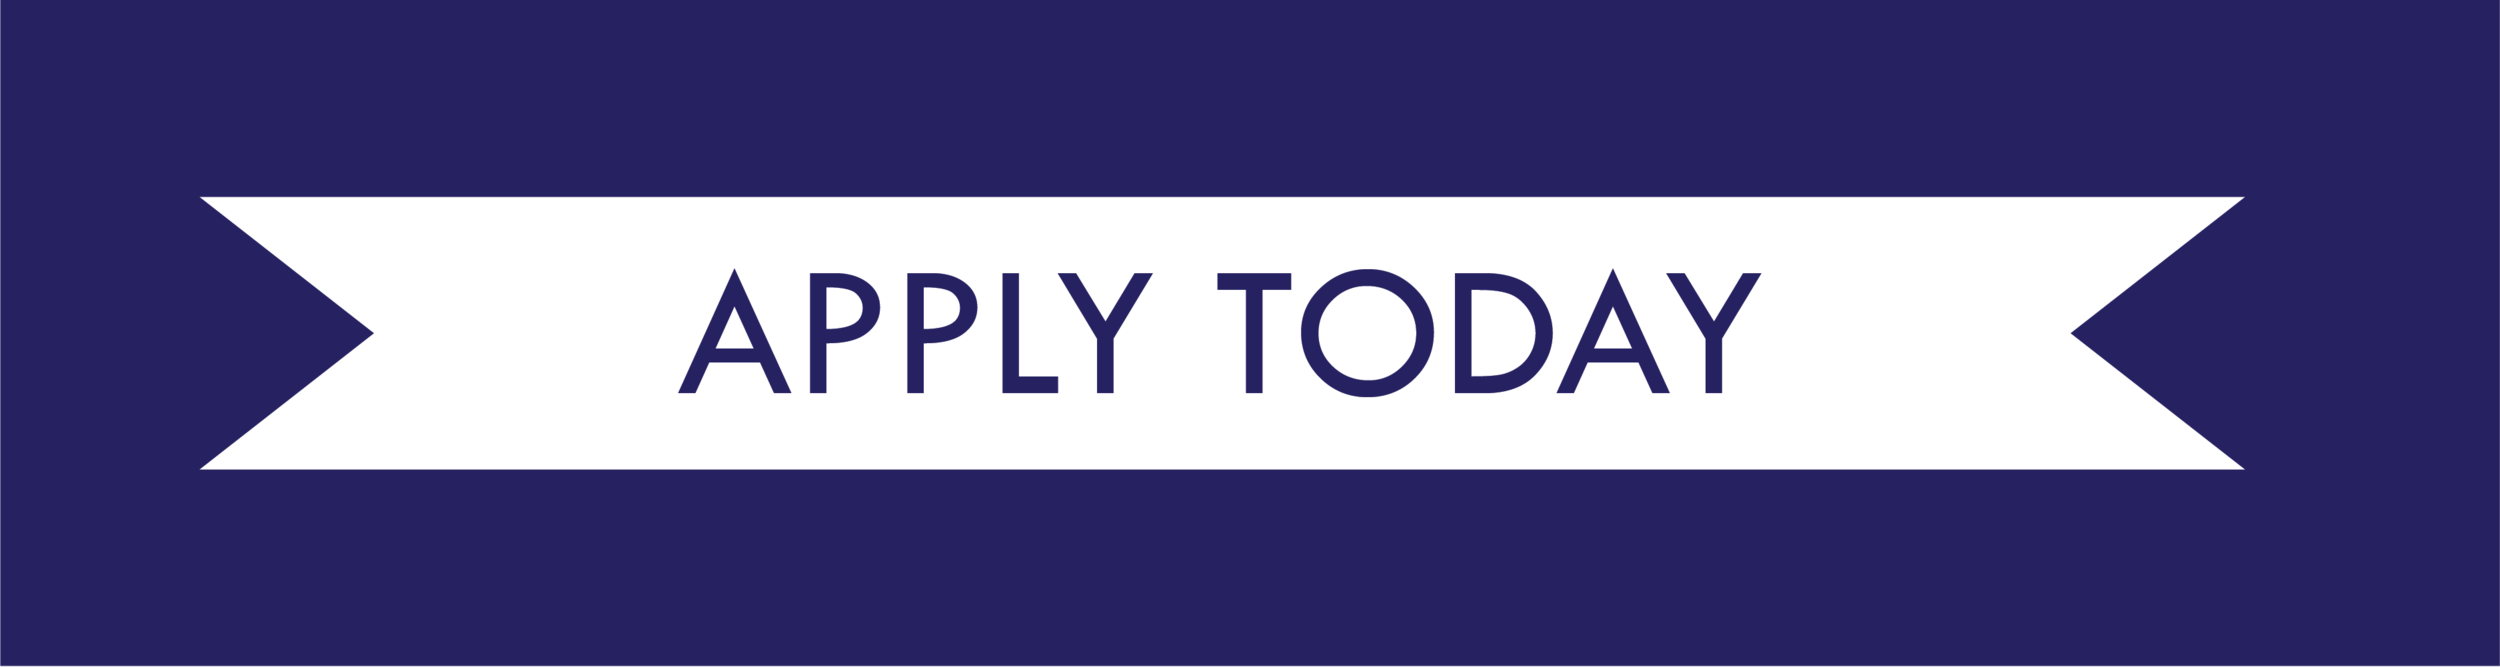 LNTU-Apply Today Button-06.png